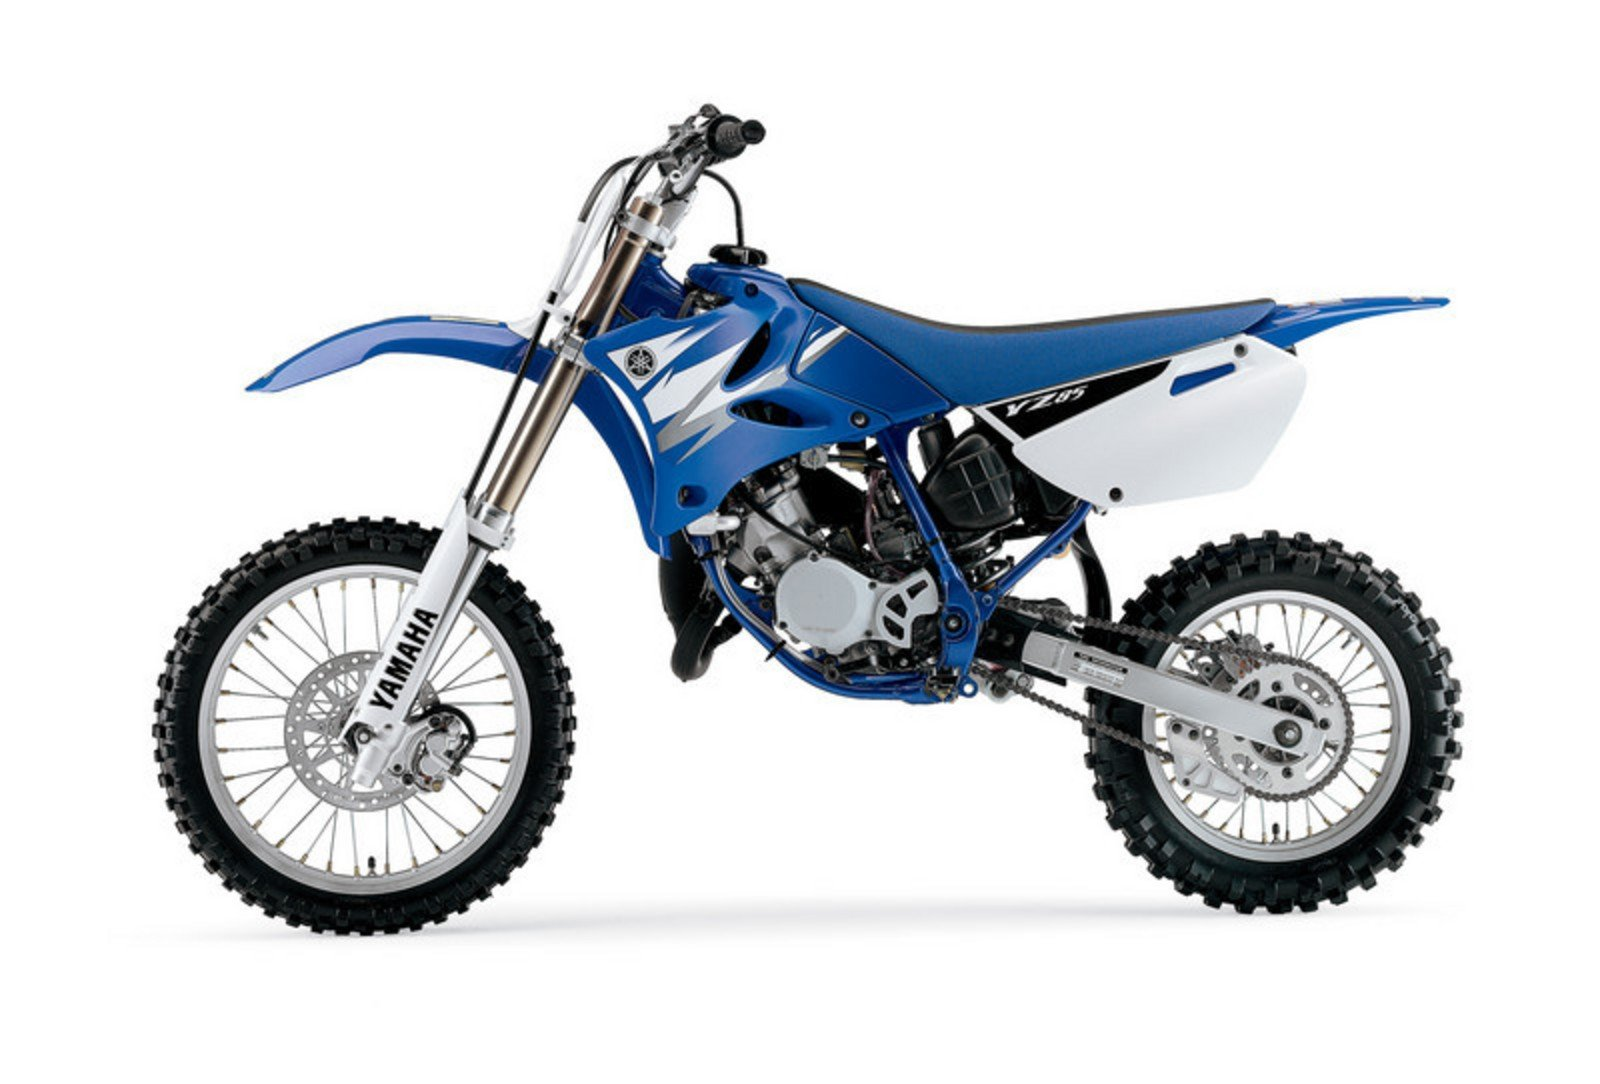 2006 yamaha yz85 picture 51717 motorcycle review top for Yamaha yz85 top speed